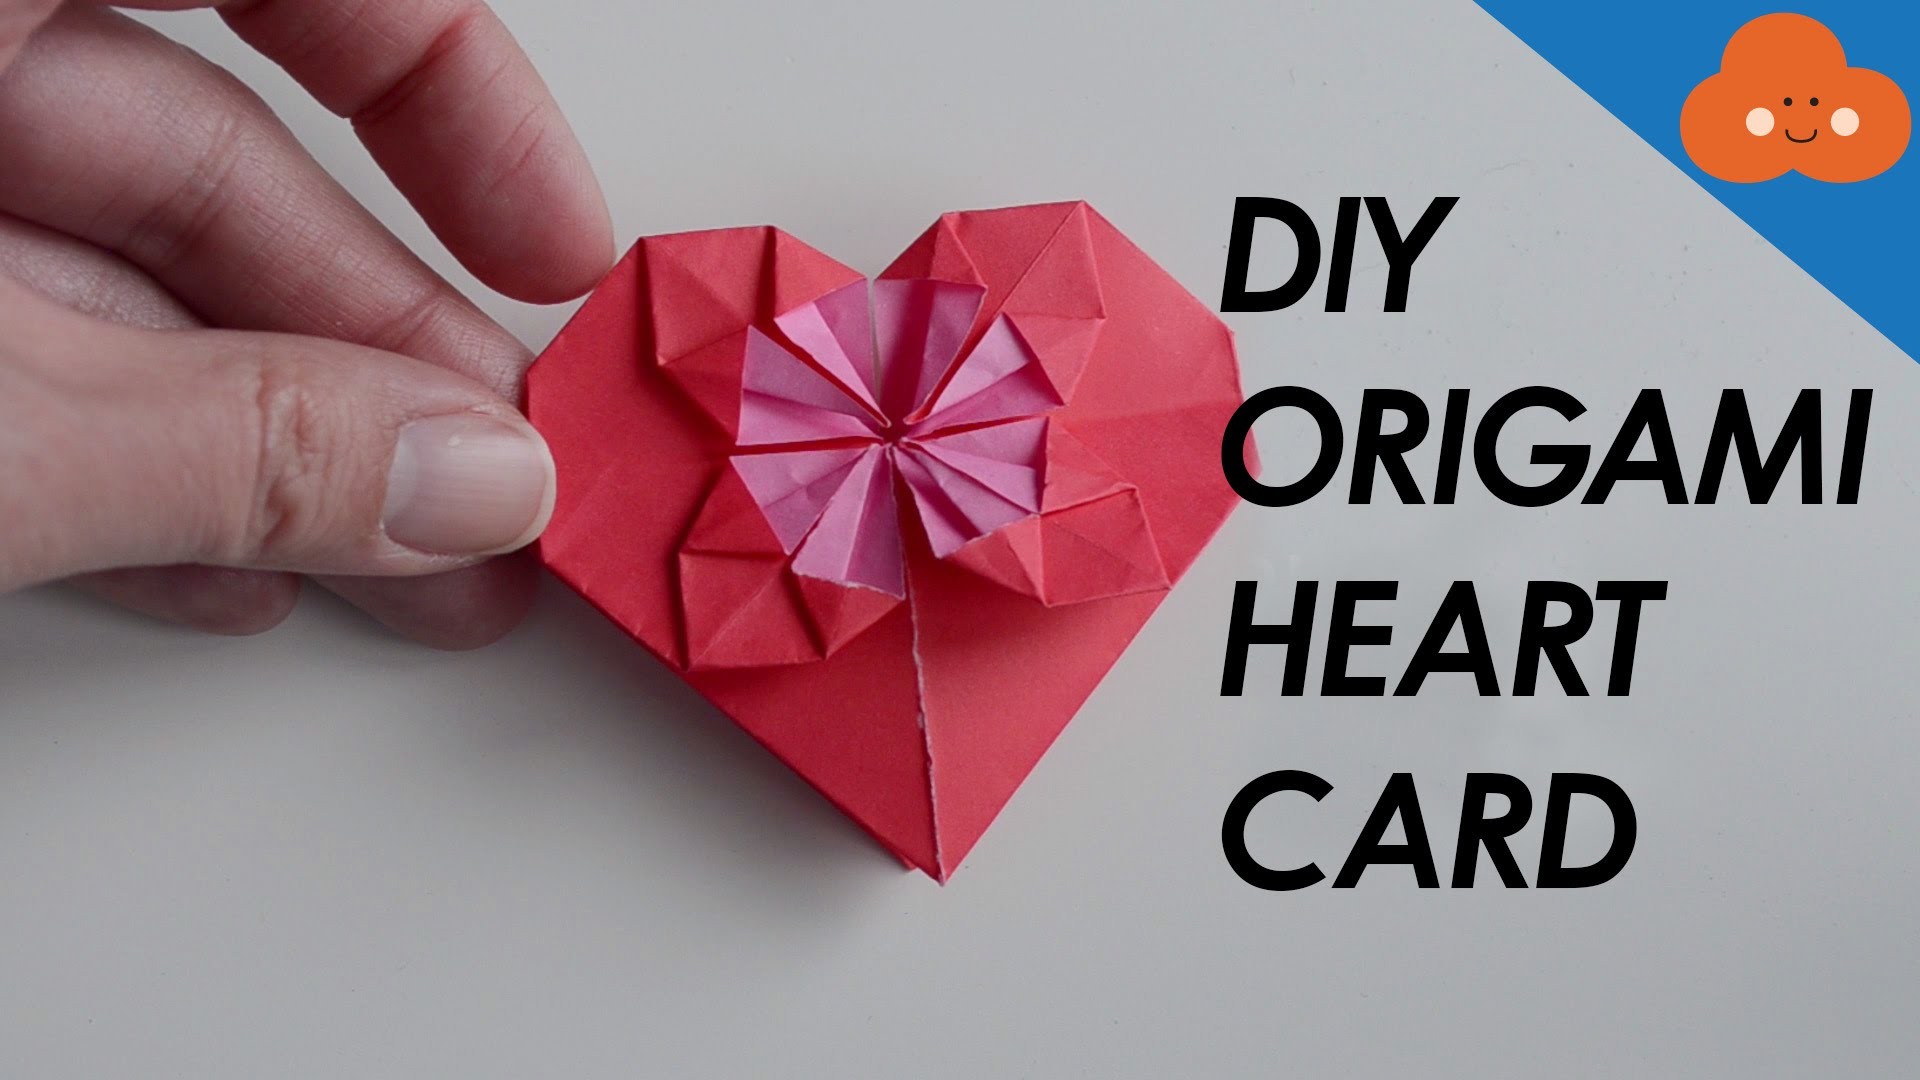 Origami Diy Cards Diy Origami Heart Card Youtube